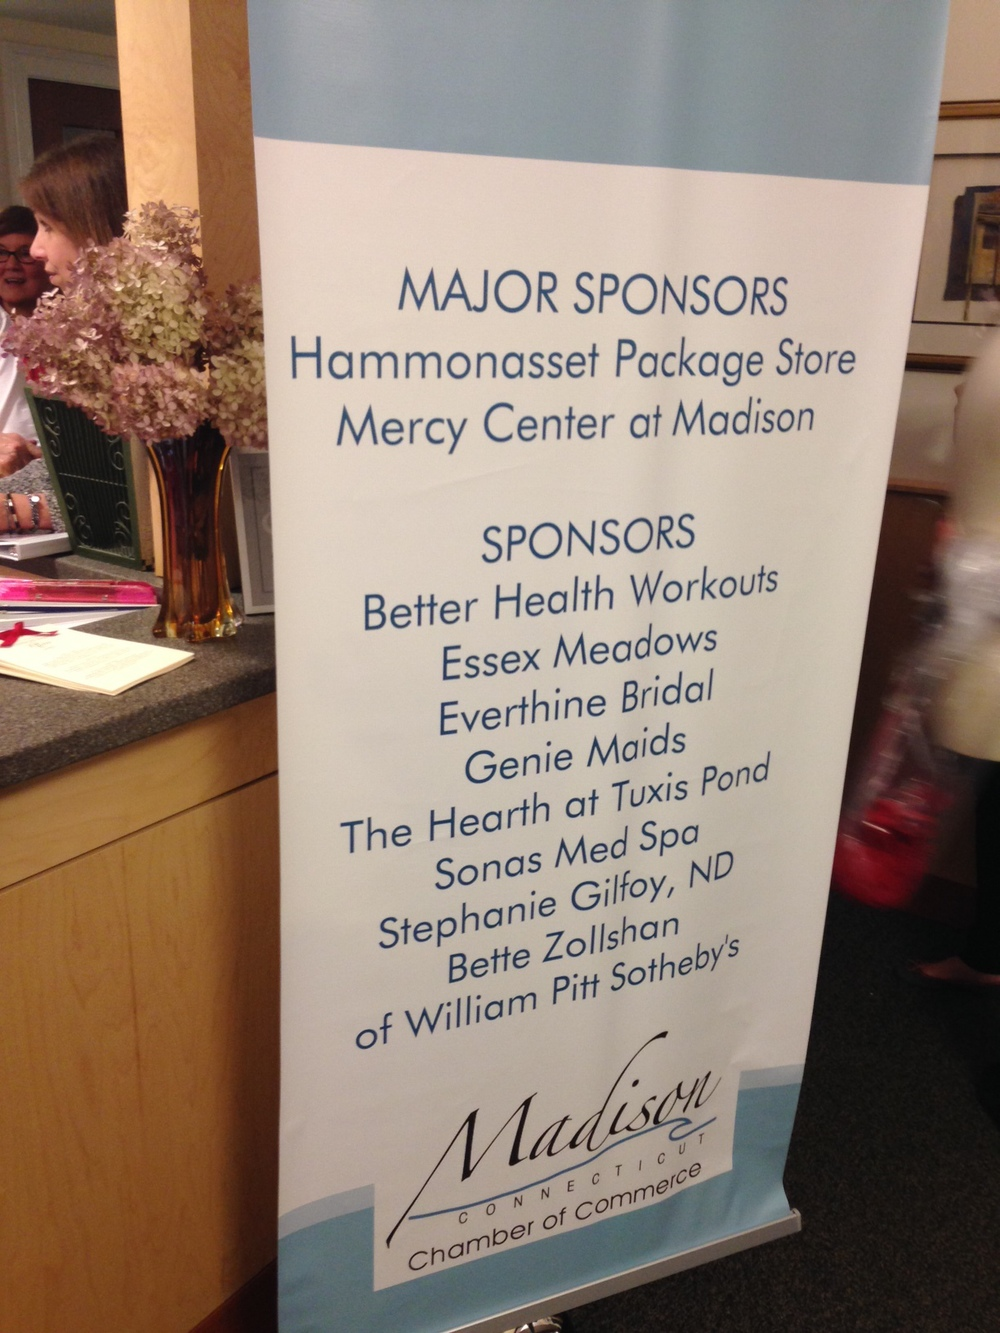 what a great event- Thanks Madison Chamber and sponsors!